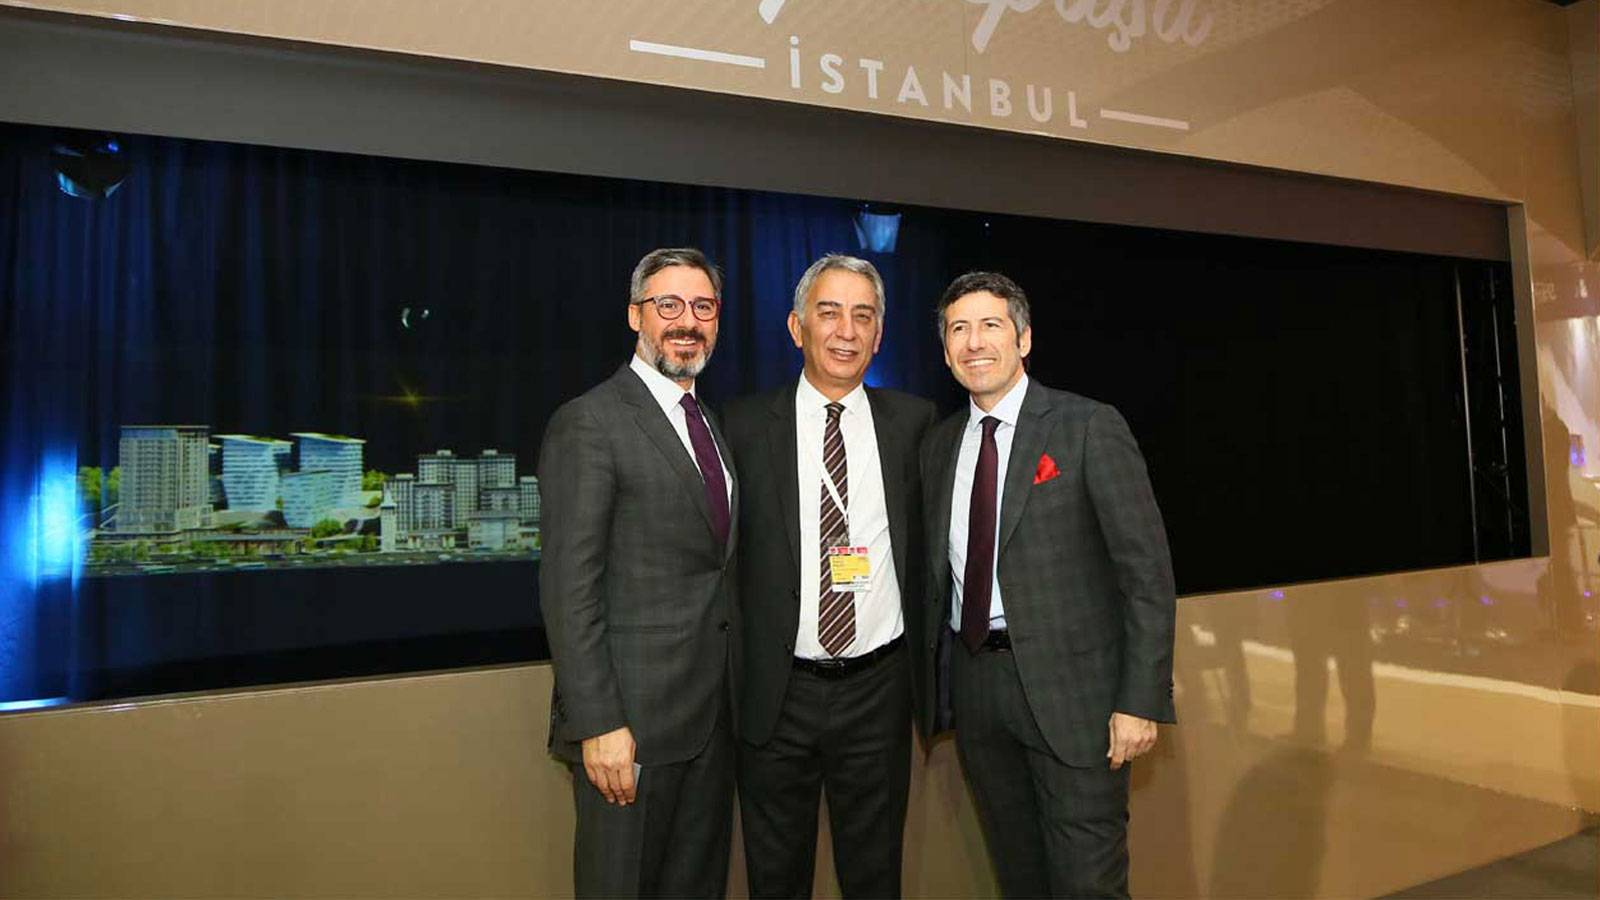 Official Launch of Piyalepasa Istanbul Project had been realized at Mipim in Cannes